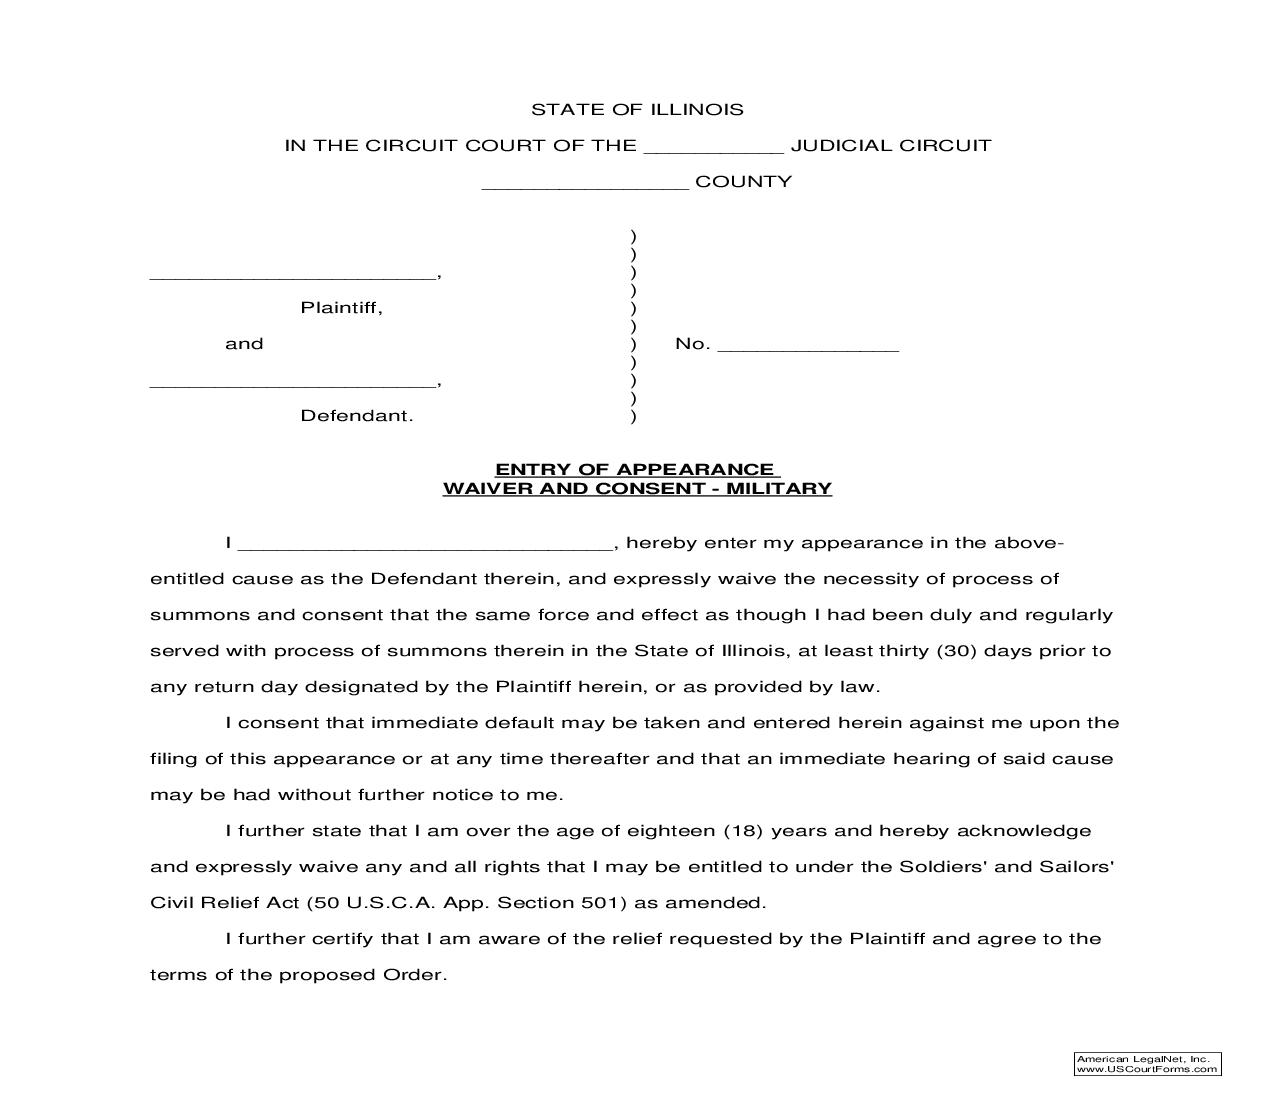 Entry Of Appearance Waiver And Consent-Military   Pdf Fpdf Doc Docx   Illinois